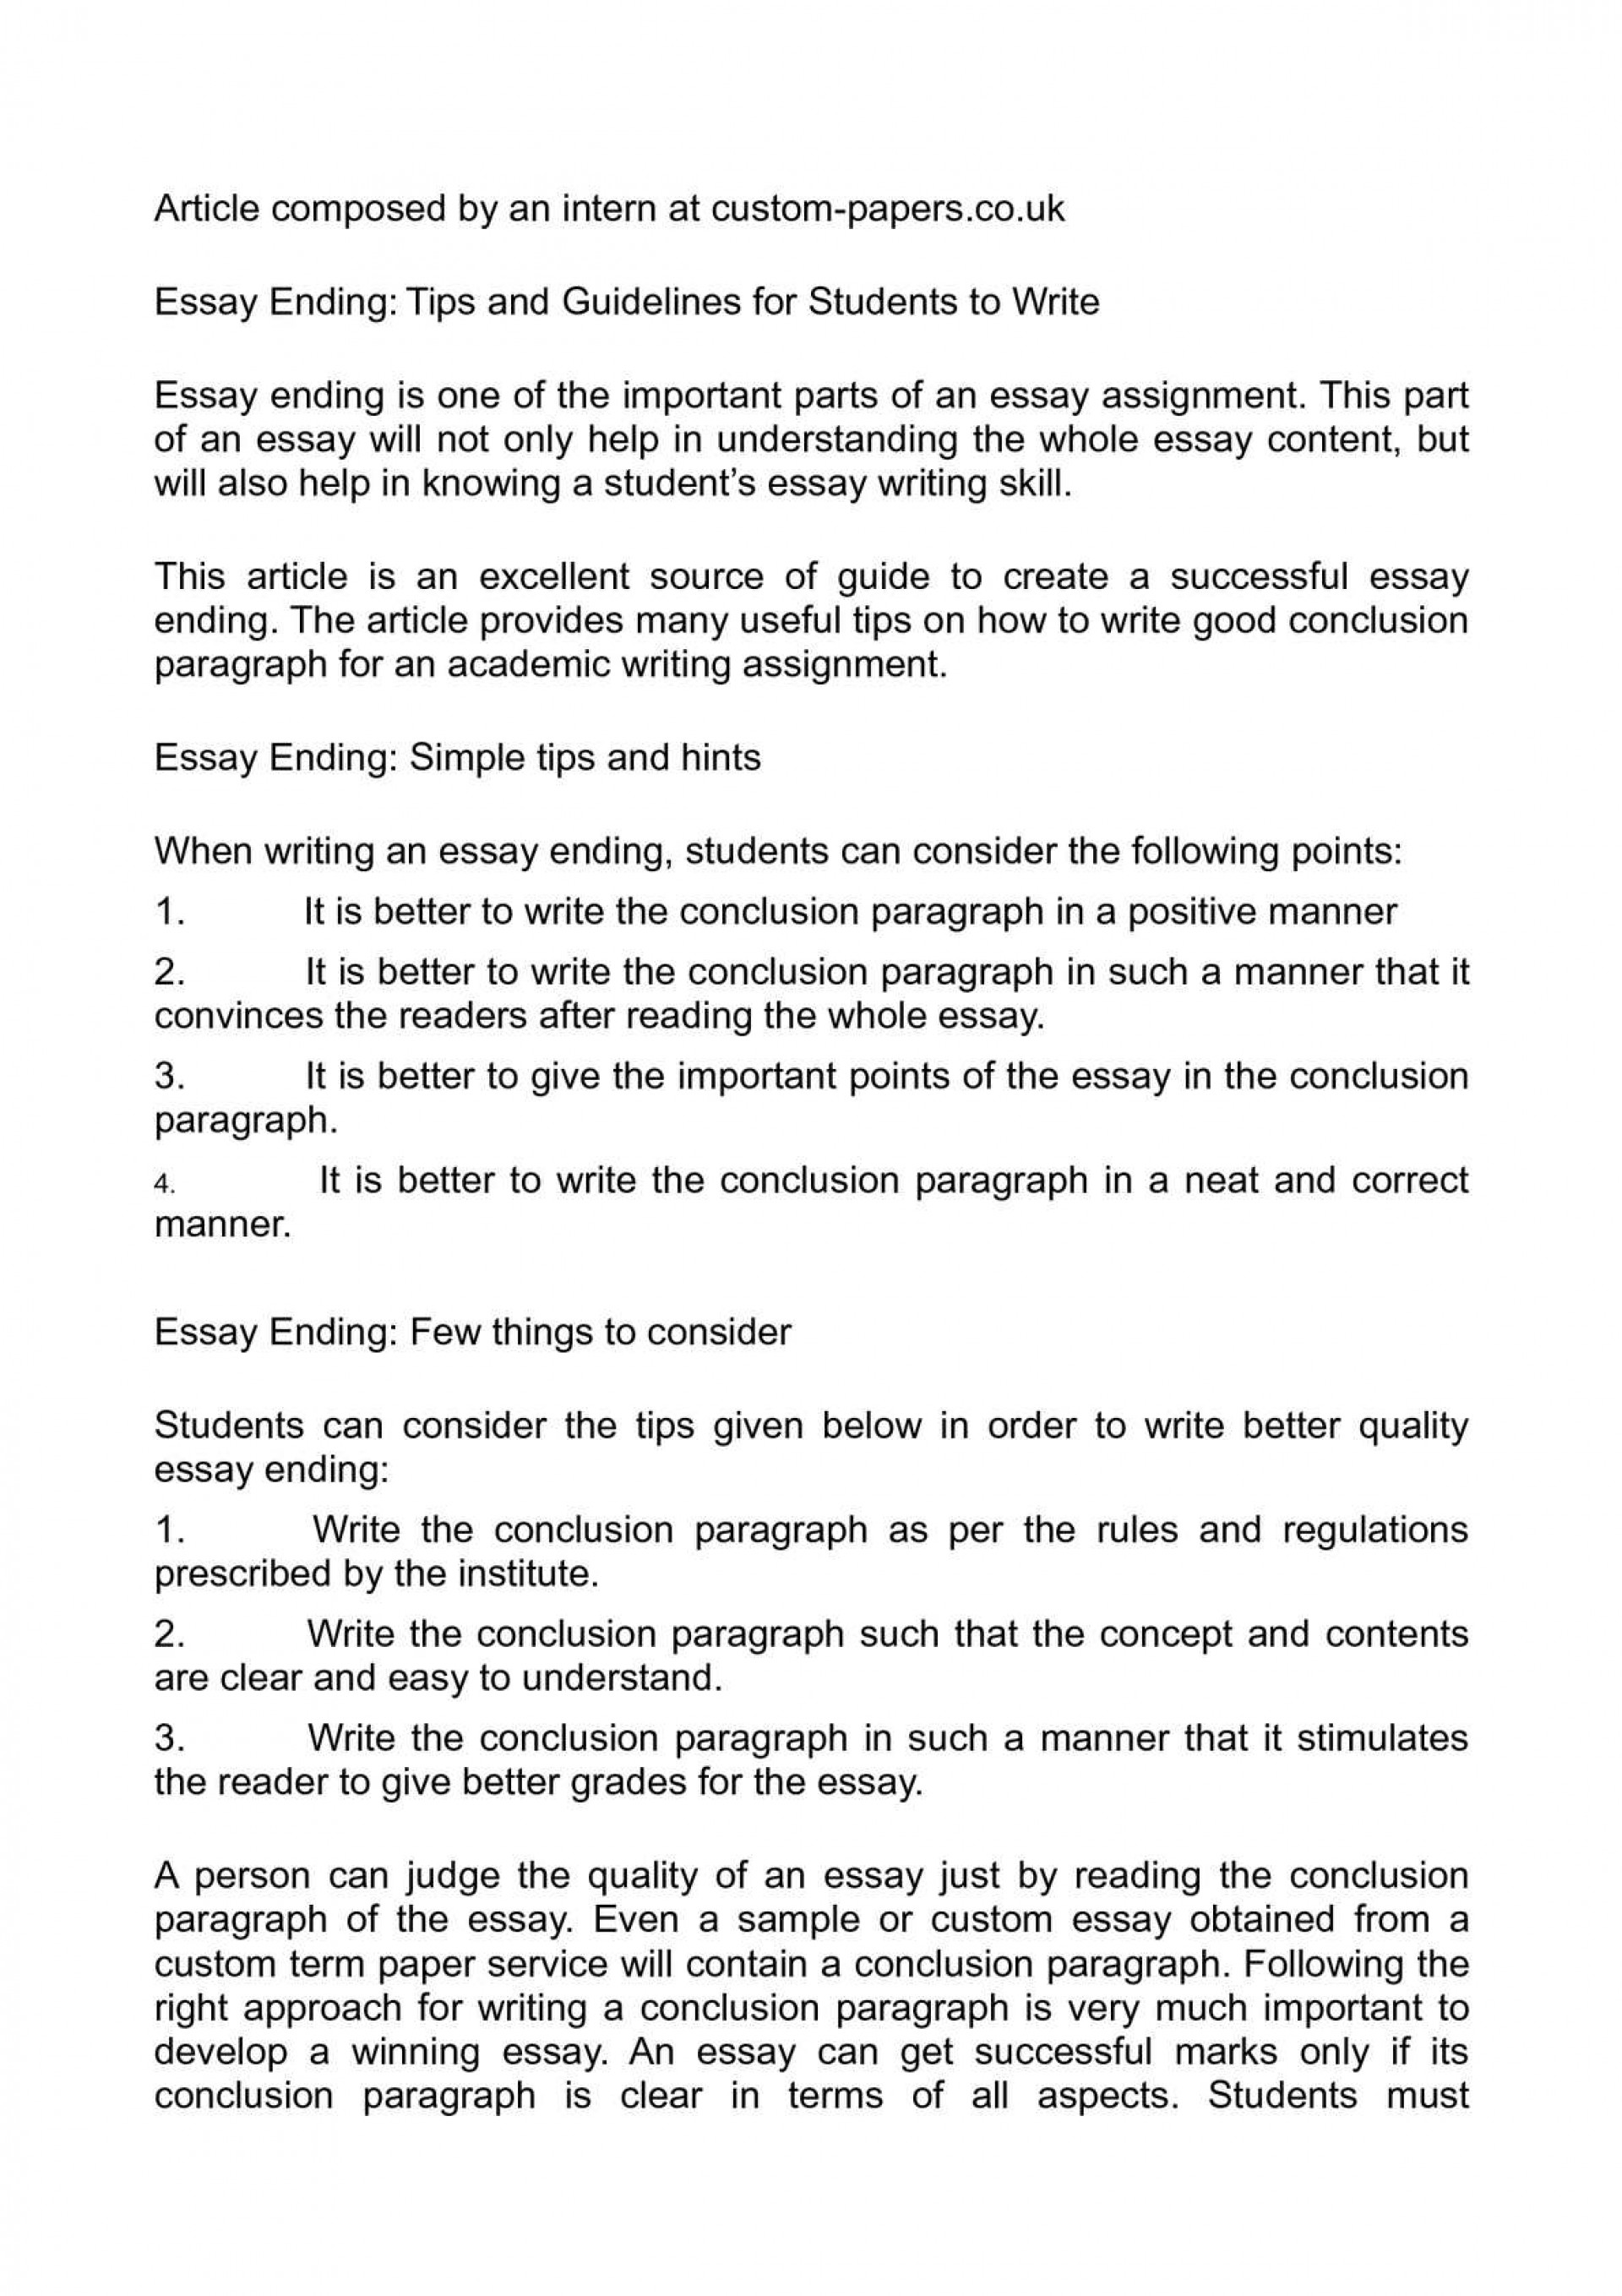 001 Parts Of An Essay Ending Tips And Guidelines For Students To Write Writing Persuasi Pdf Three Persuasive Stupendous Introduction Body Conclusion The Academic 1920